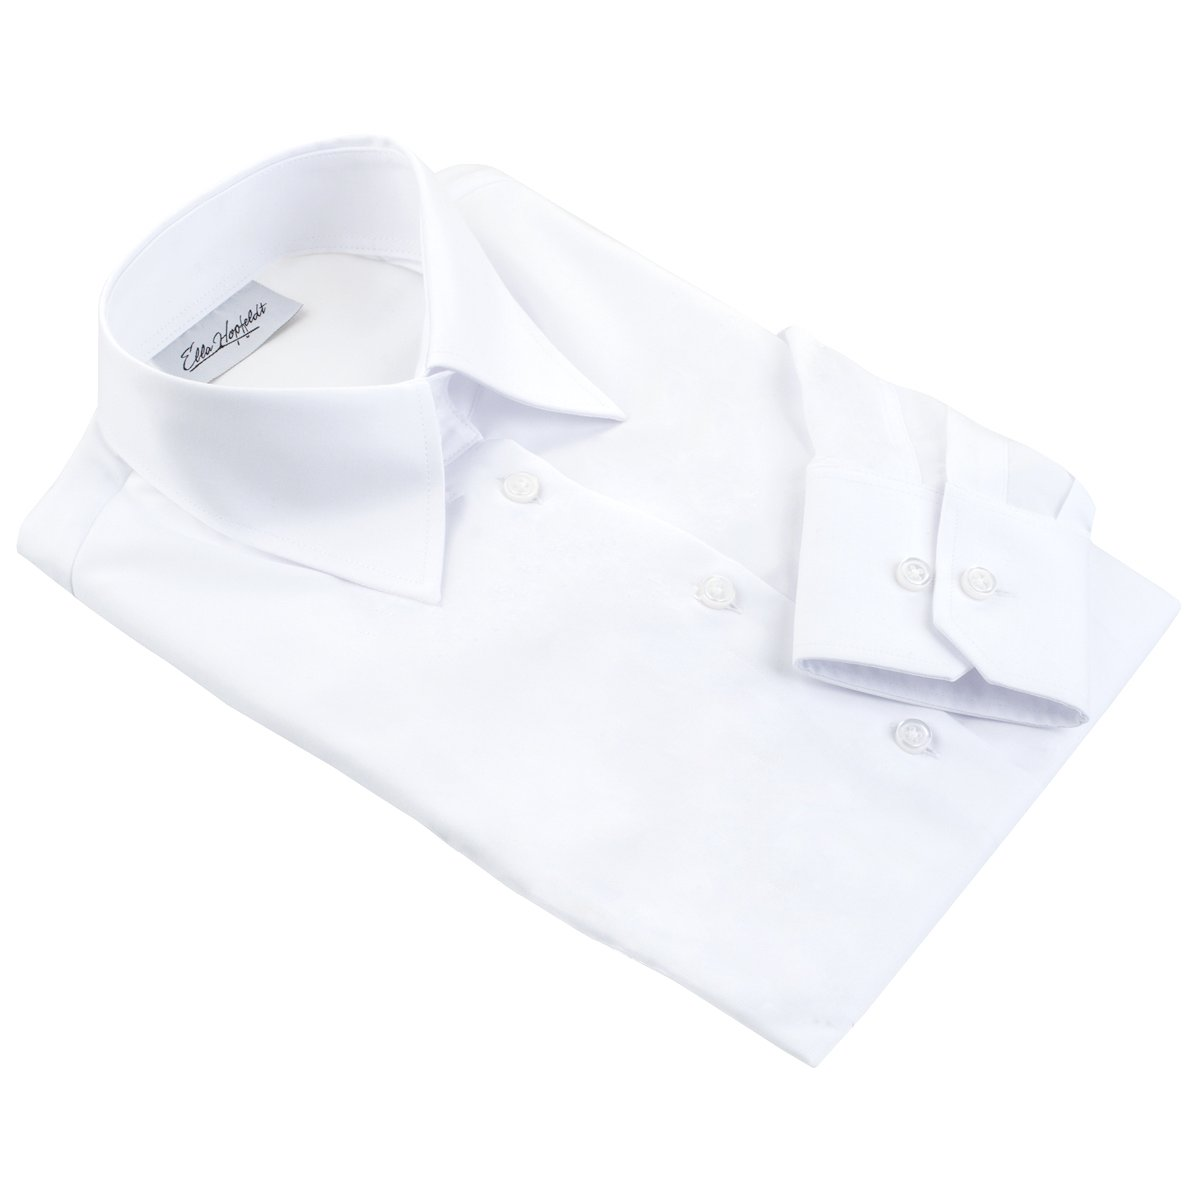 BERLIN white dress shirt